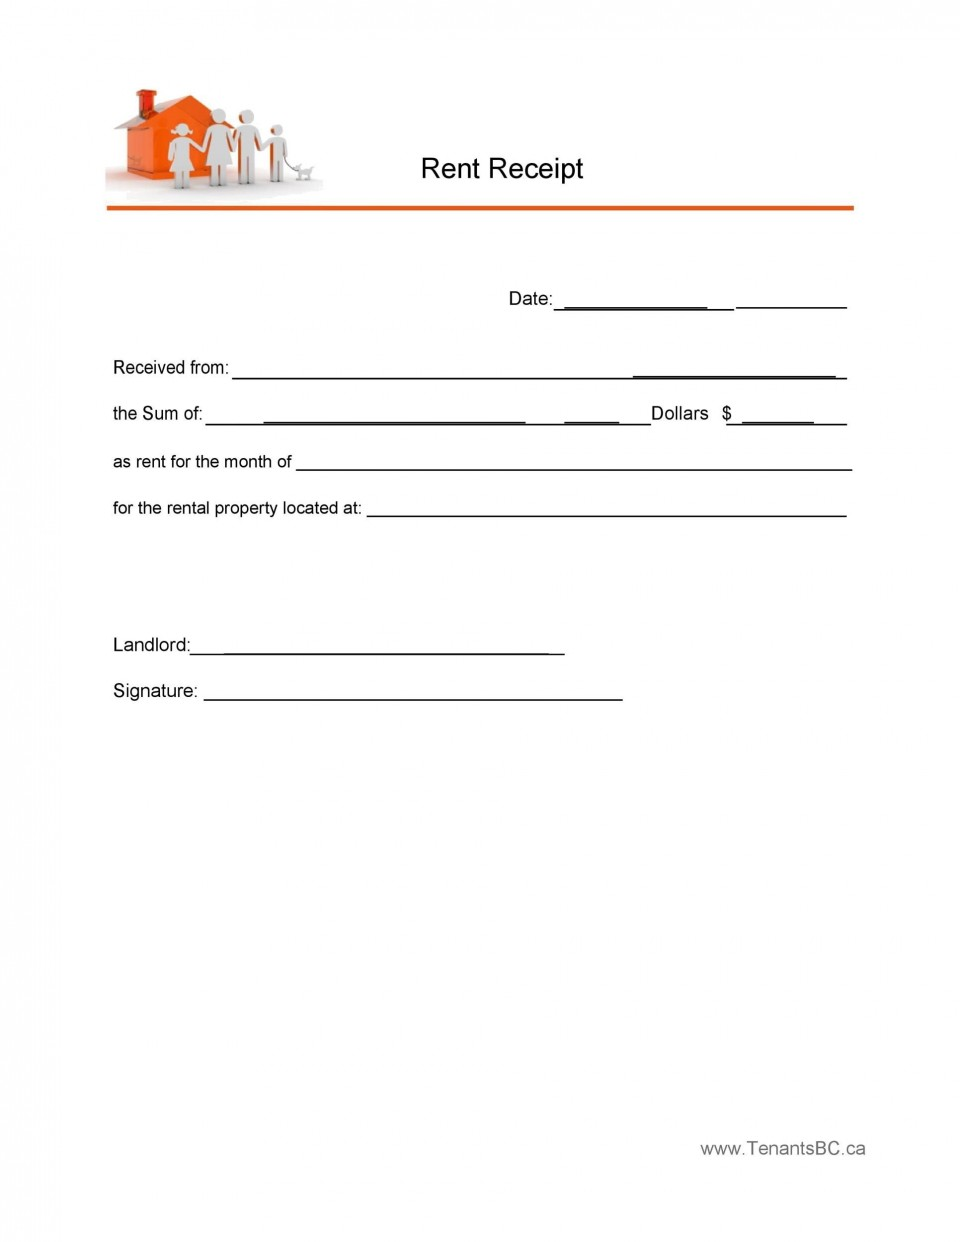 010 Outstanding Rent Receipt Template Docx High Resolution  Format India Car Rental Bill Doc960